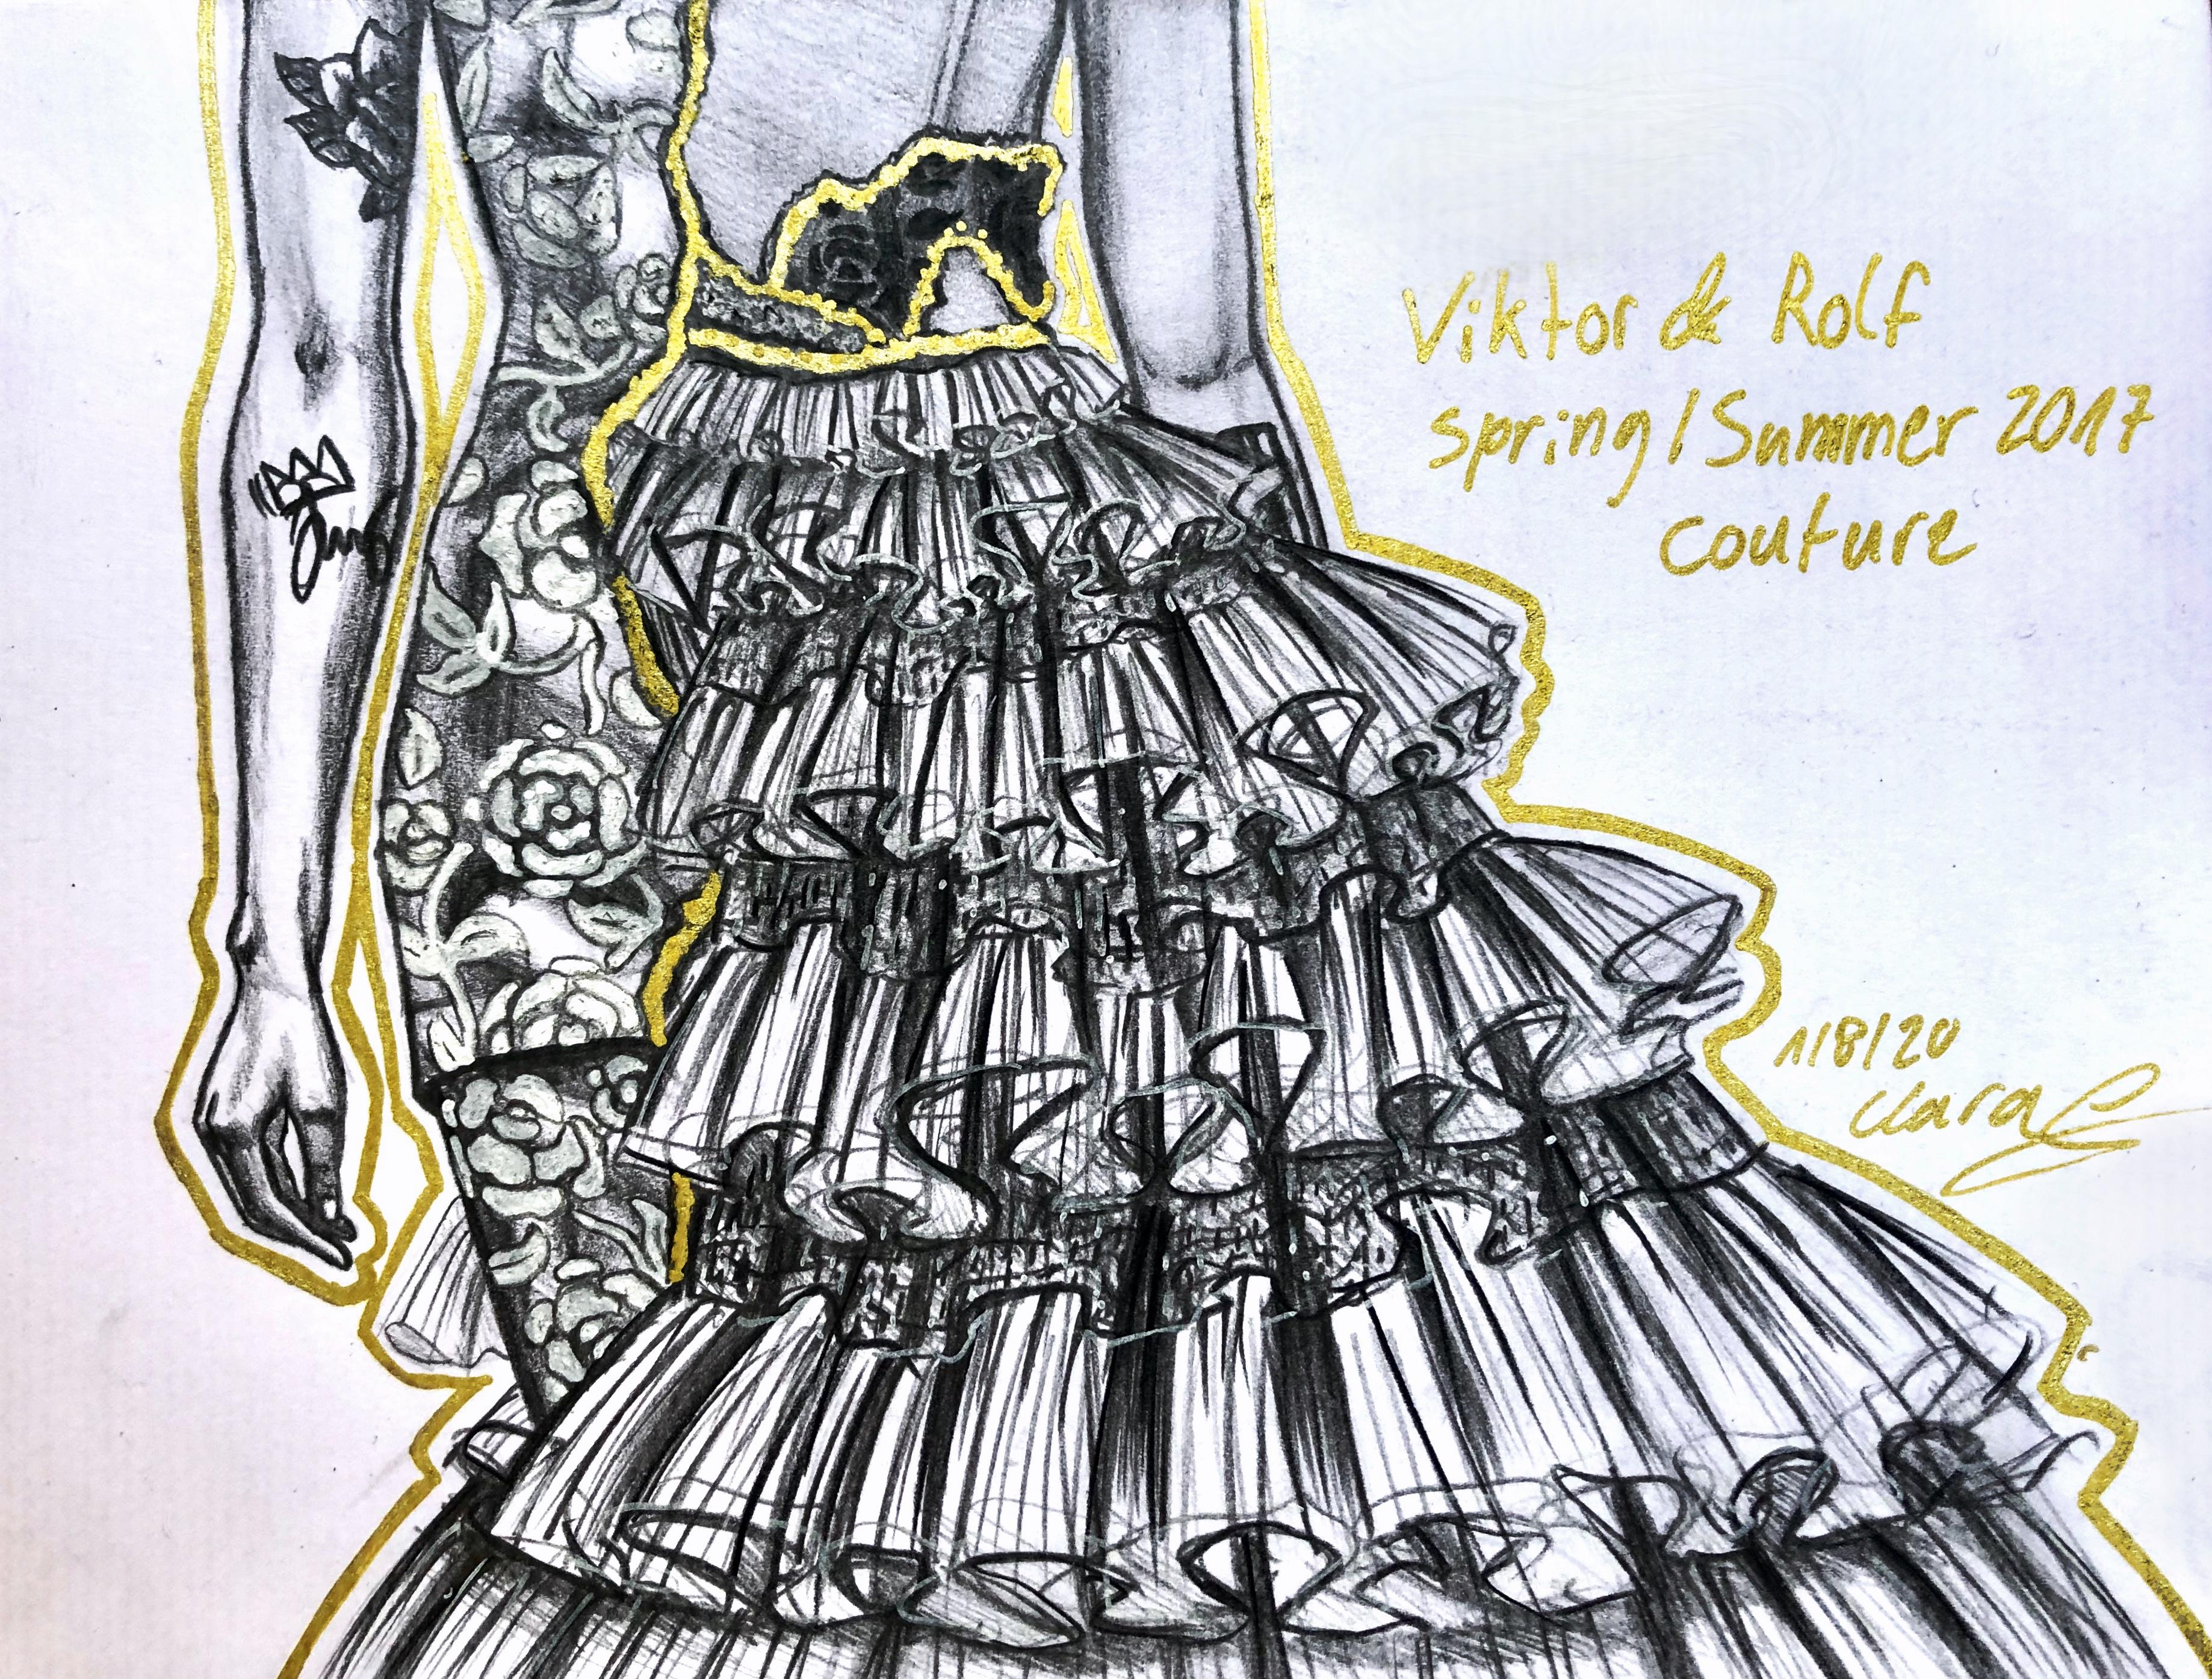 A sketch by Clara of a Viktor D Rolf gown done in black and white